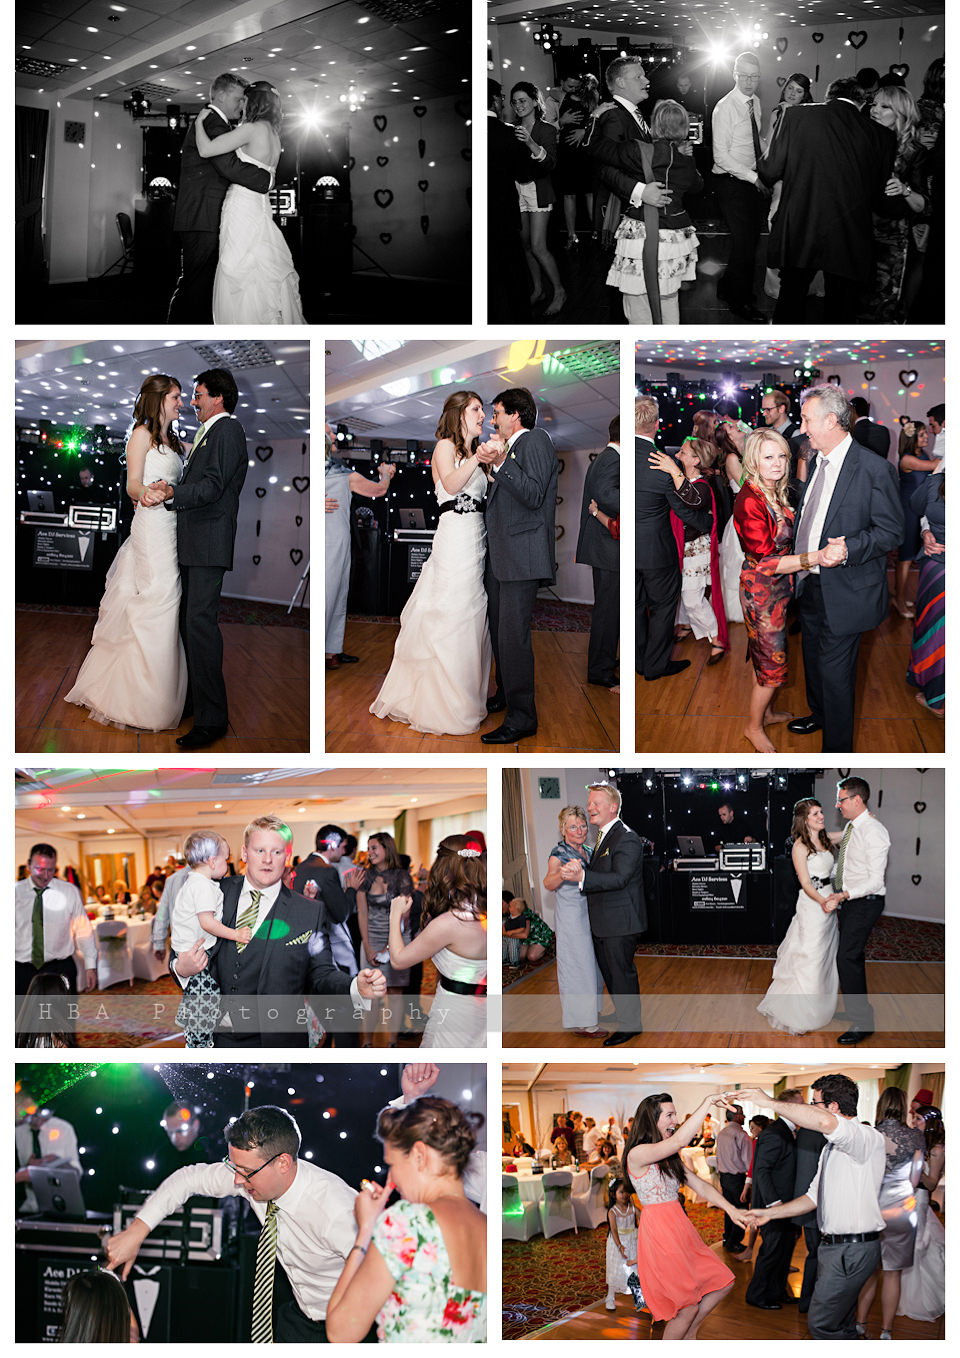 The wedding of Josey & Sam at Hellidon Lakes Golf & Spa Hotel, by contemporary Derbyshire photographers HBA Photography. The evening's dancing